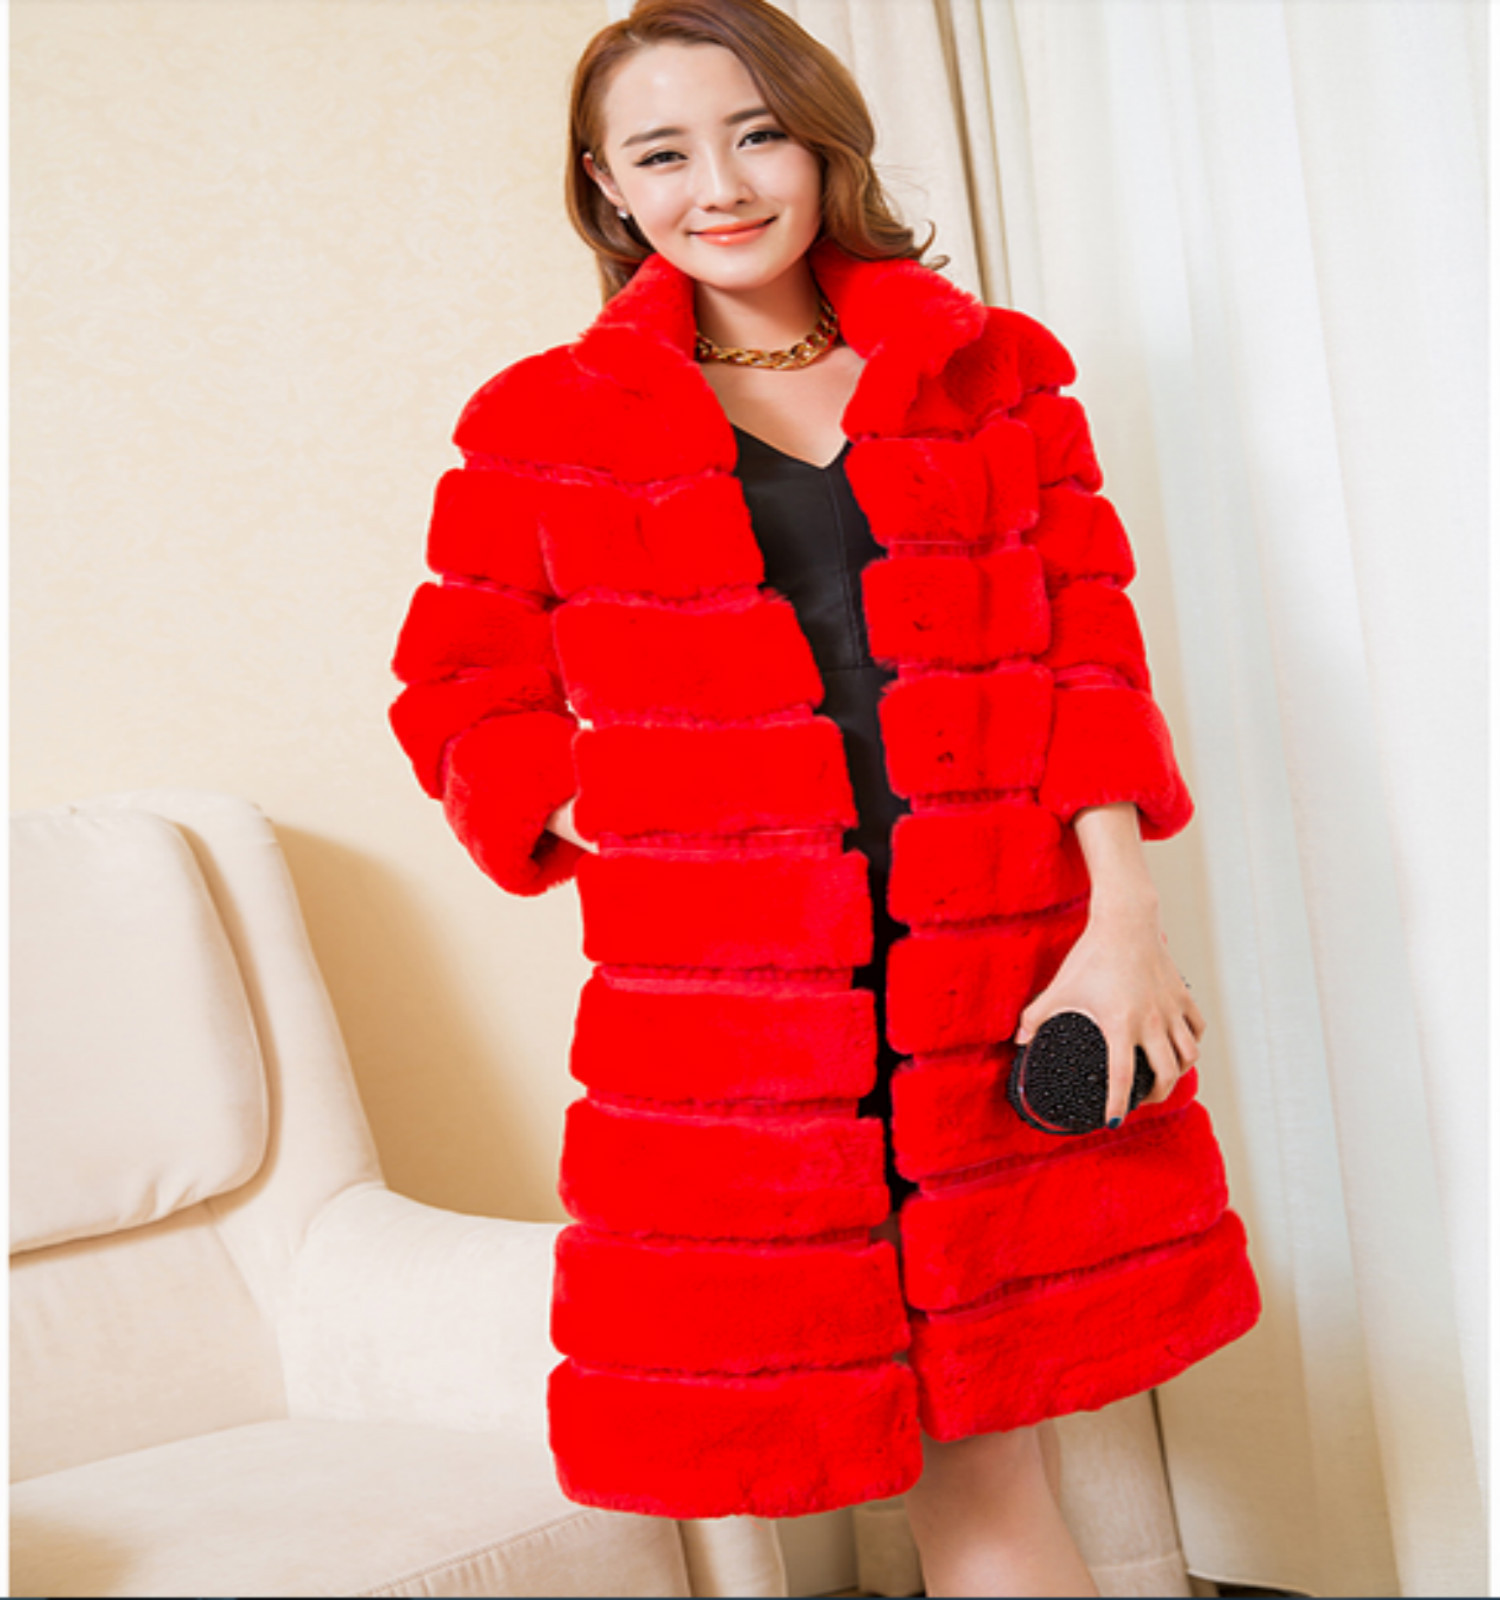 2016 fashion explosion models collar sleeve striped candy-colored leather rex rabbit fur noble fur coat(China (Mainland))